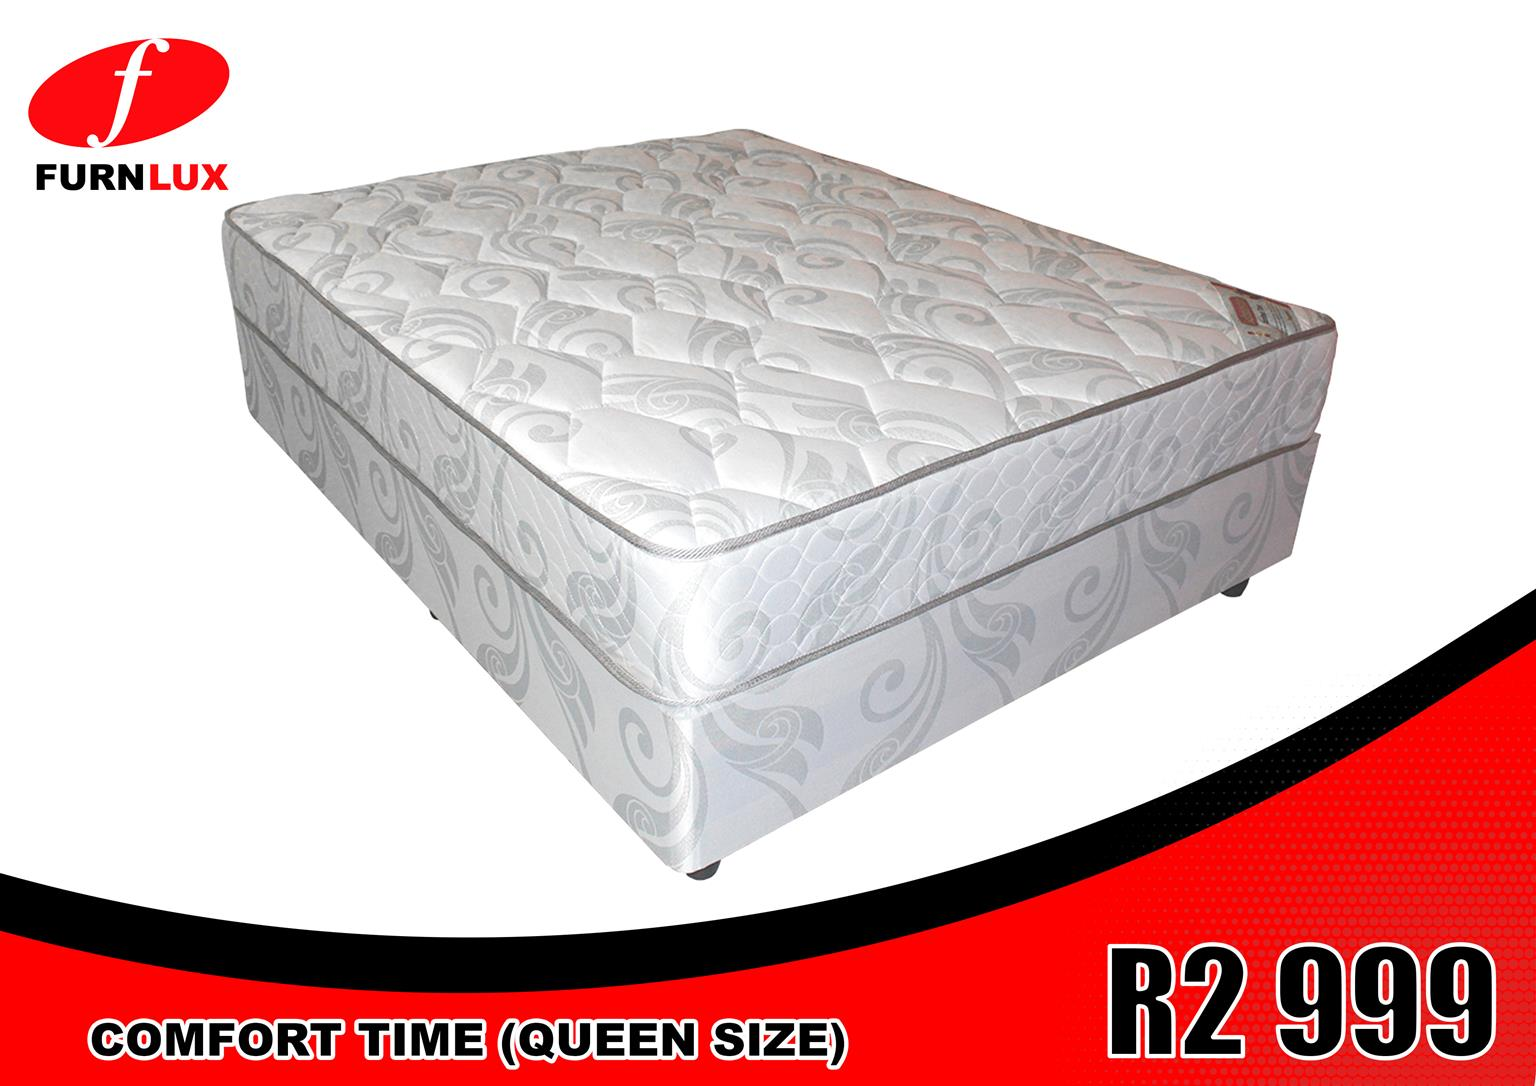 MATTRESS AND BASE BRAND NEW COMFORT TIME FOR ONLY R 2 999 !!!!!